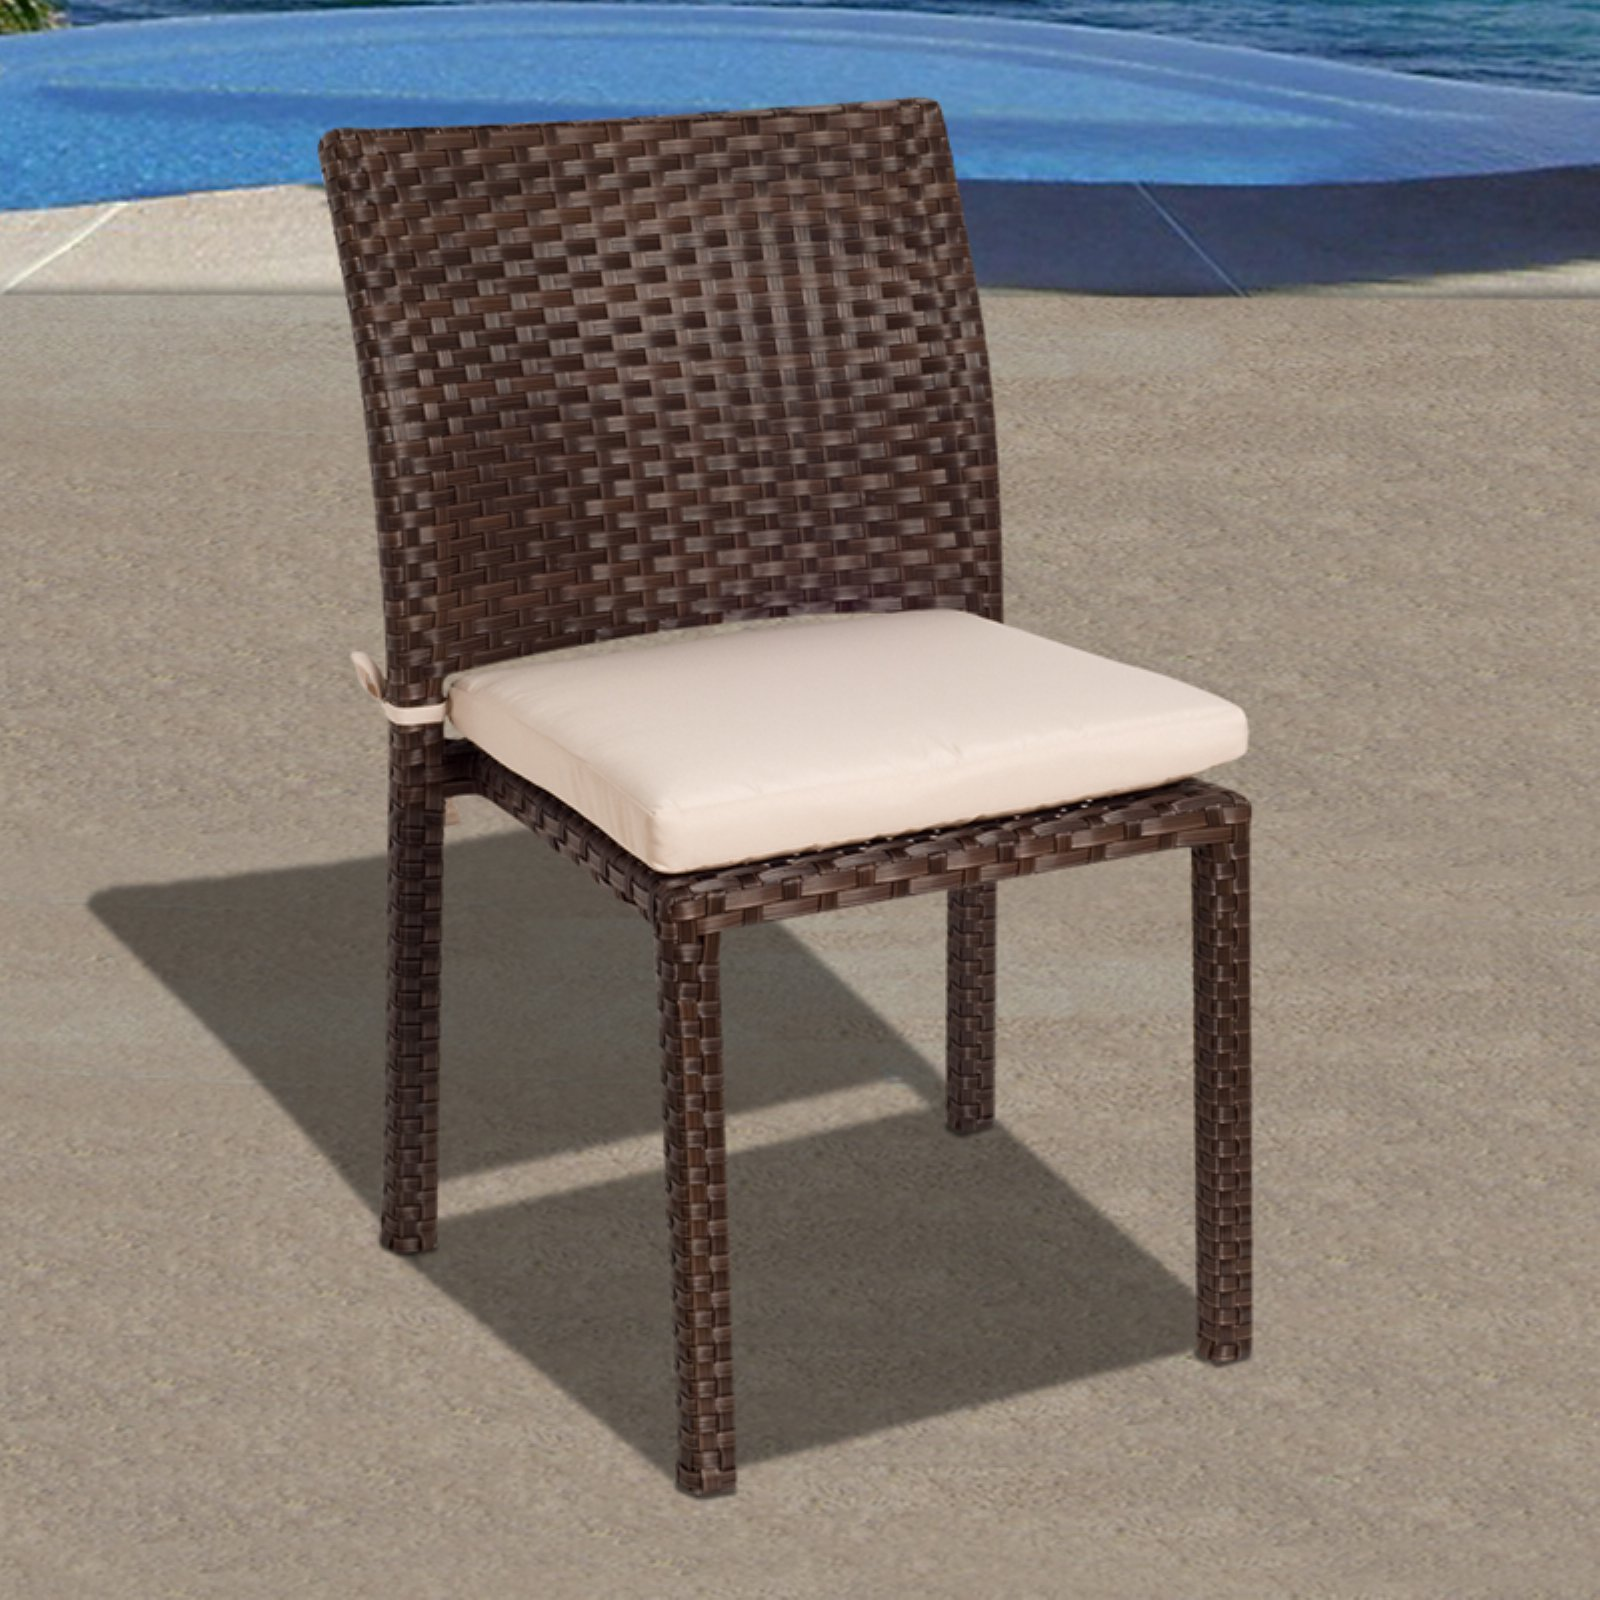 Liberty 4-Piece Wicker Patio Chair Set with Off-White Cushions